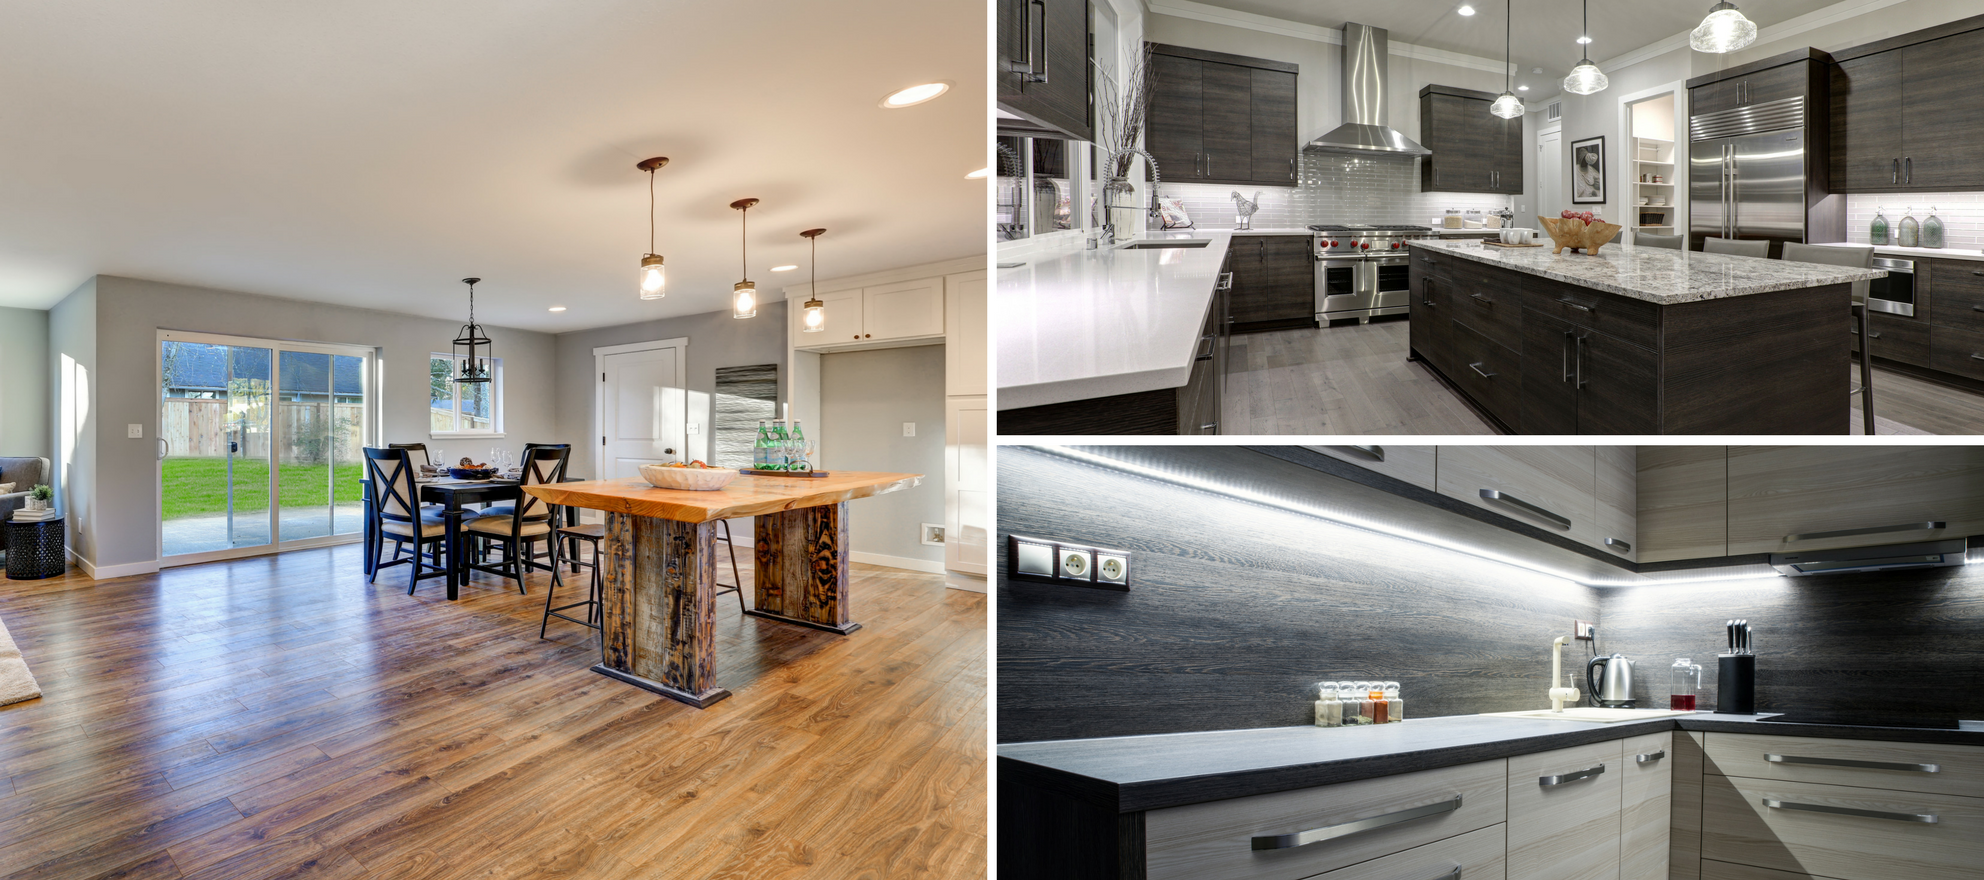 5 Kitchen Design Trends That Make Buyers Swoon